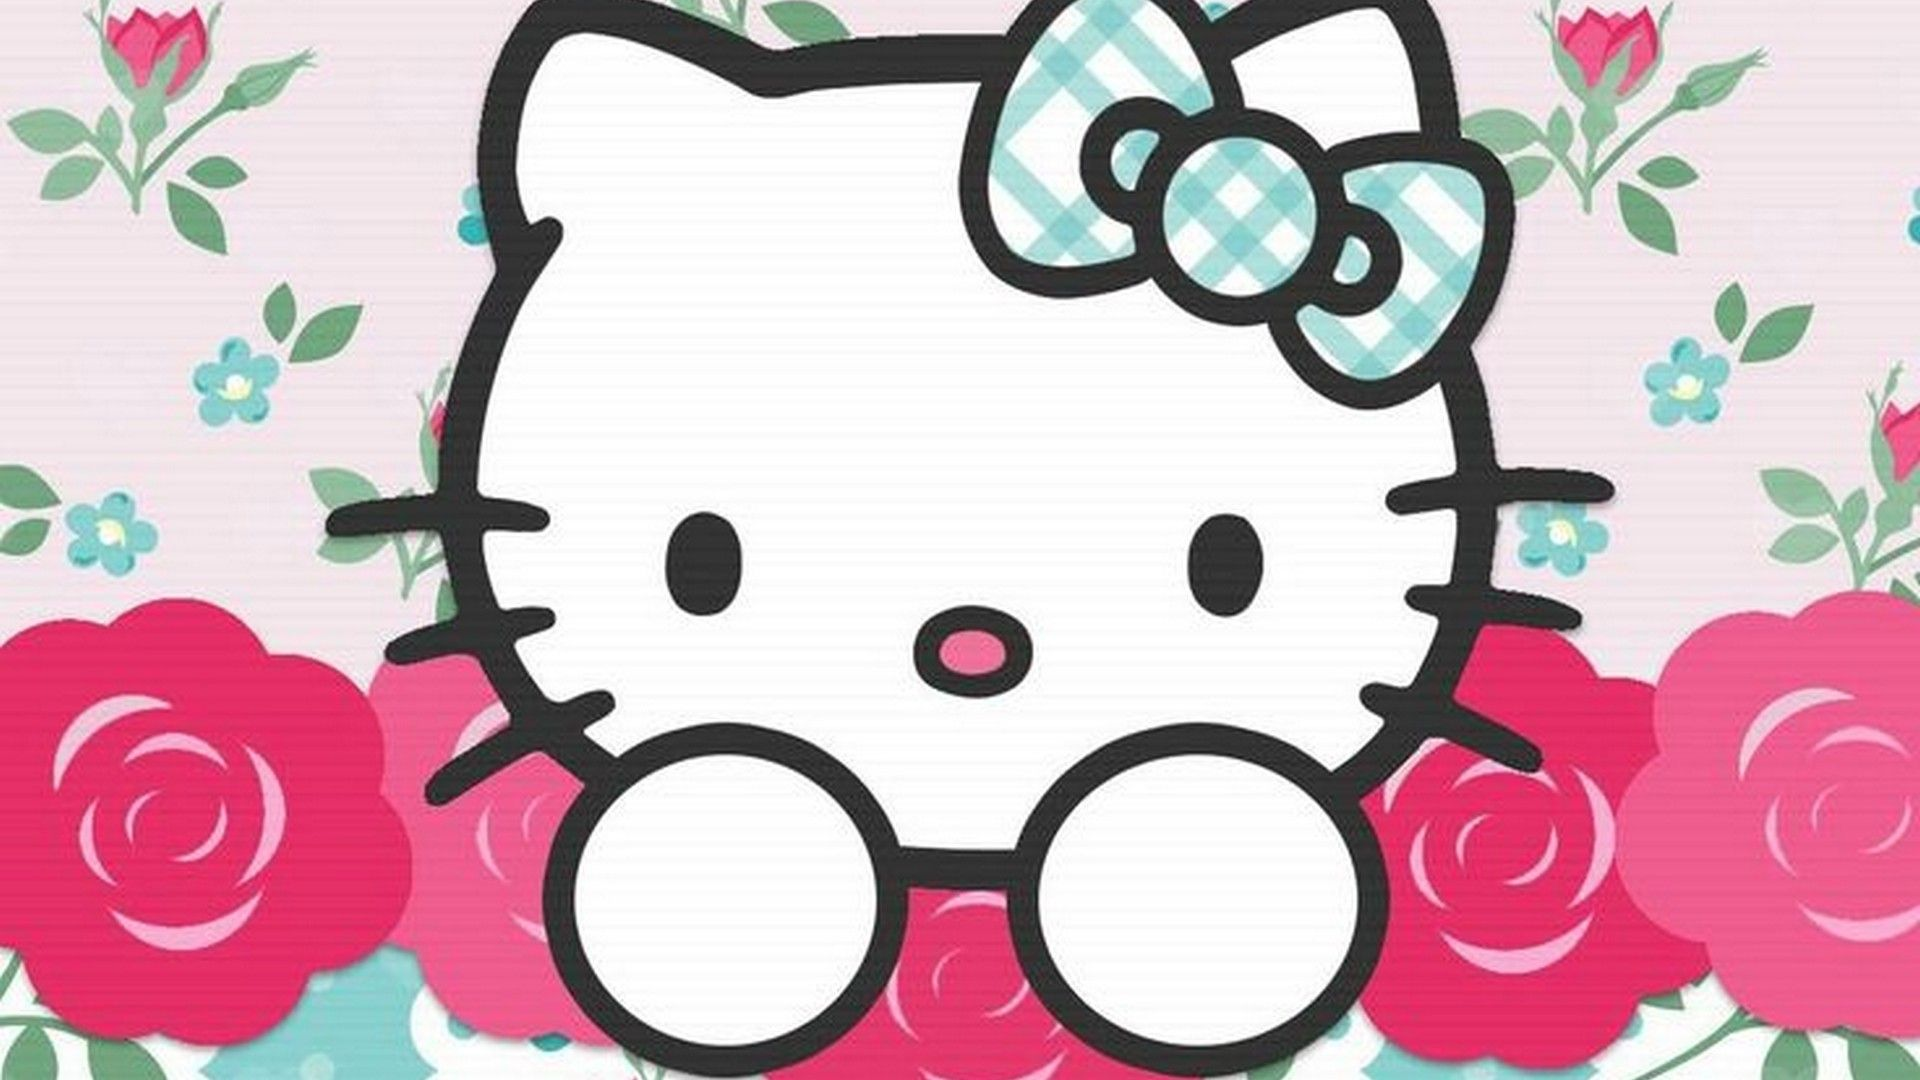 Live Wallpaper Hd Hello Kitty Best Wallpaper Hd Kitty